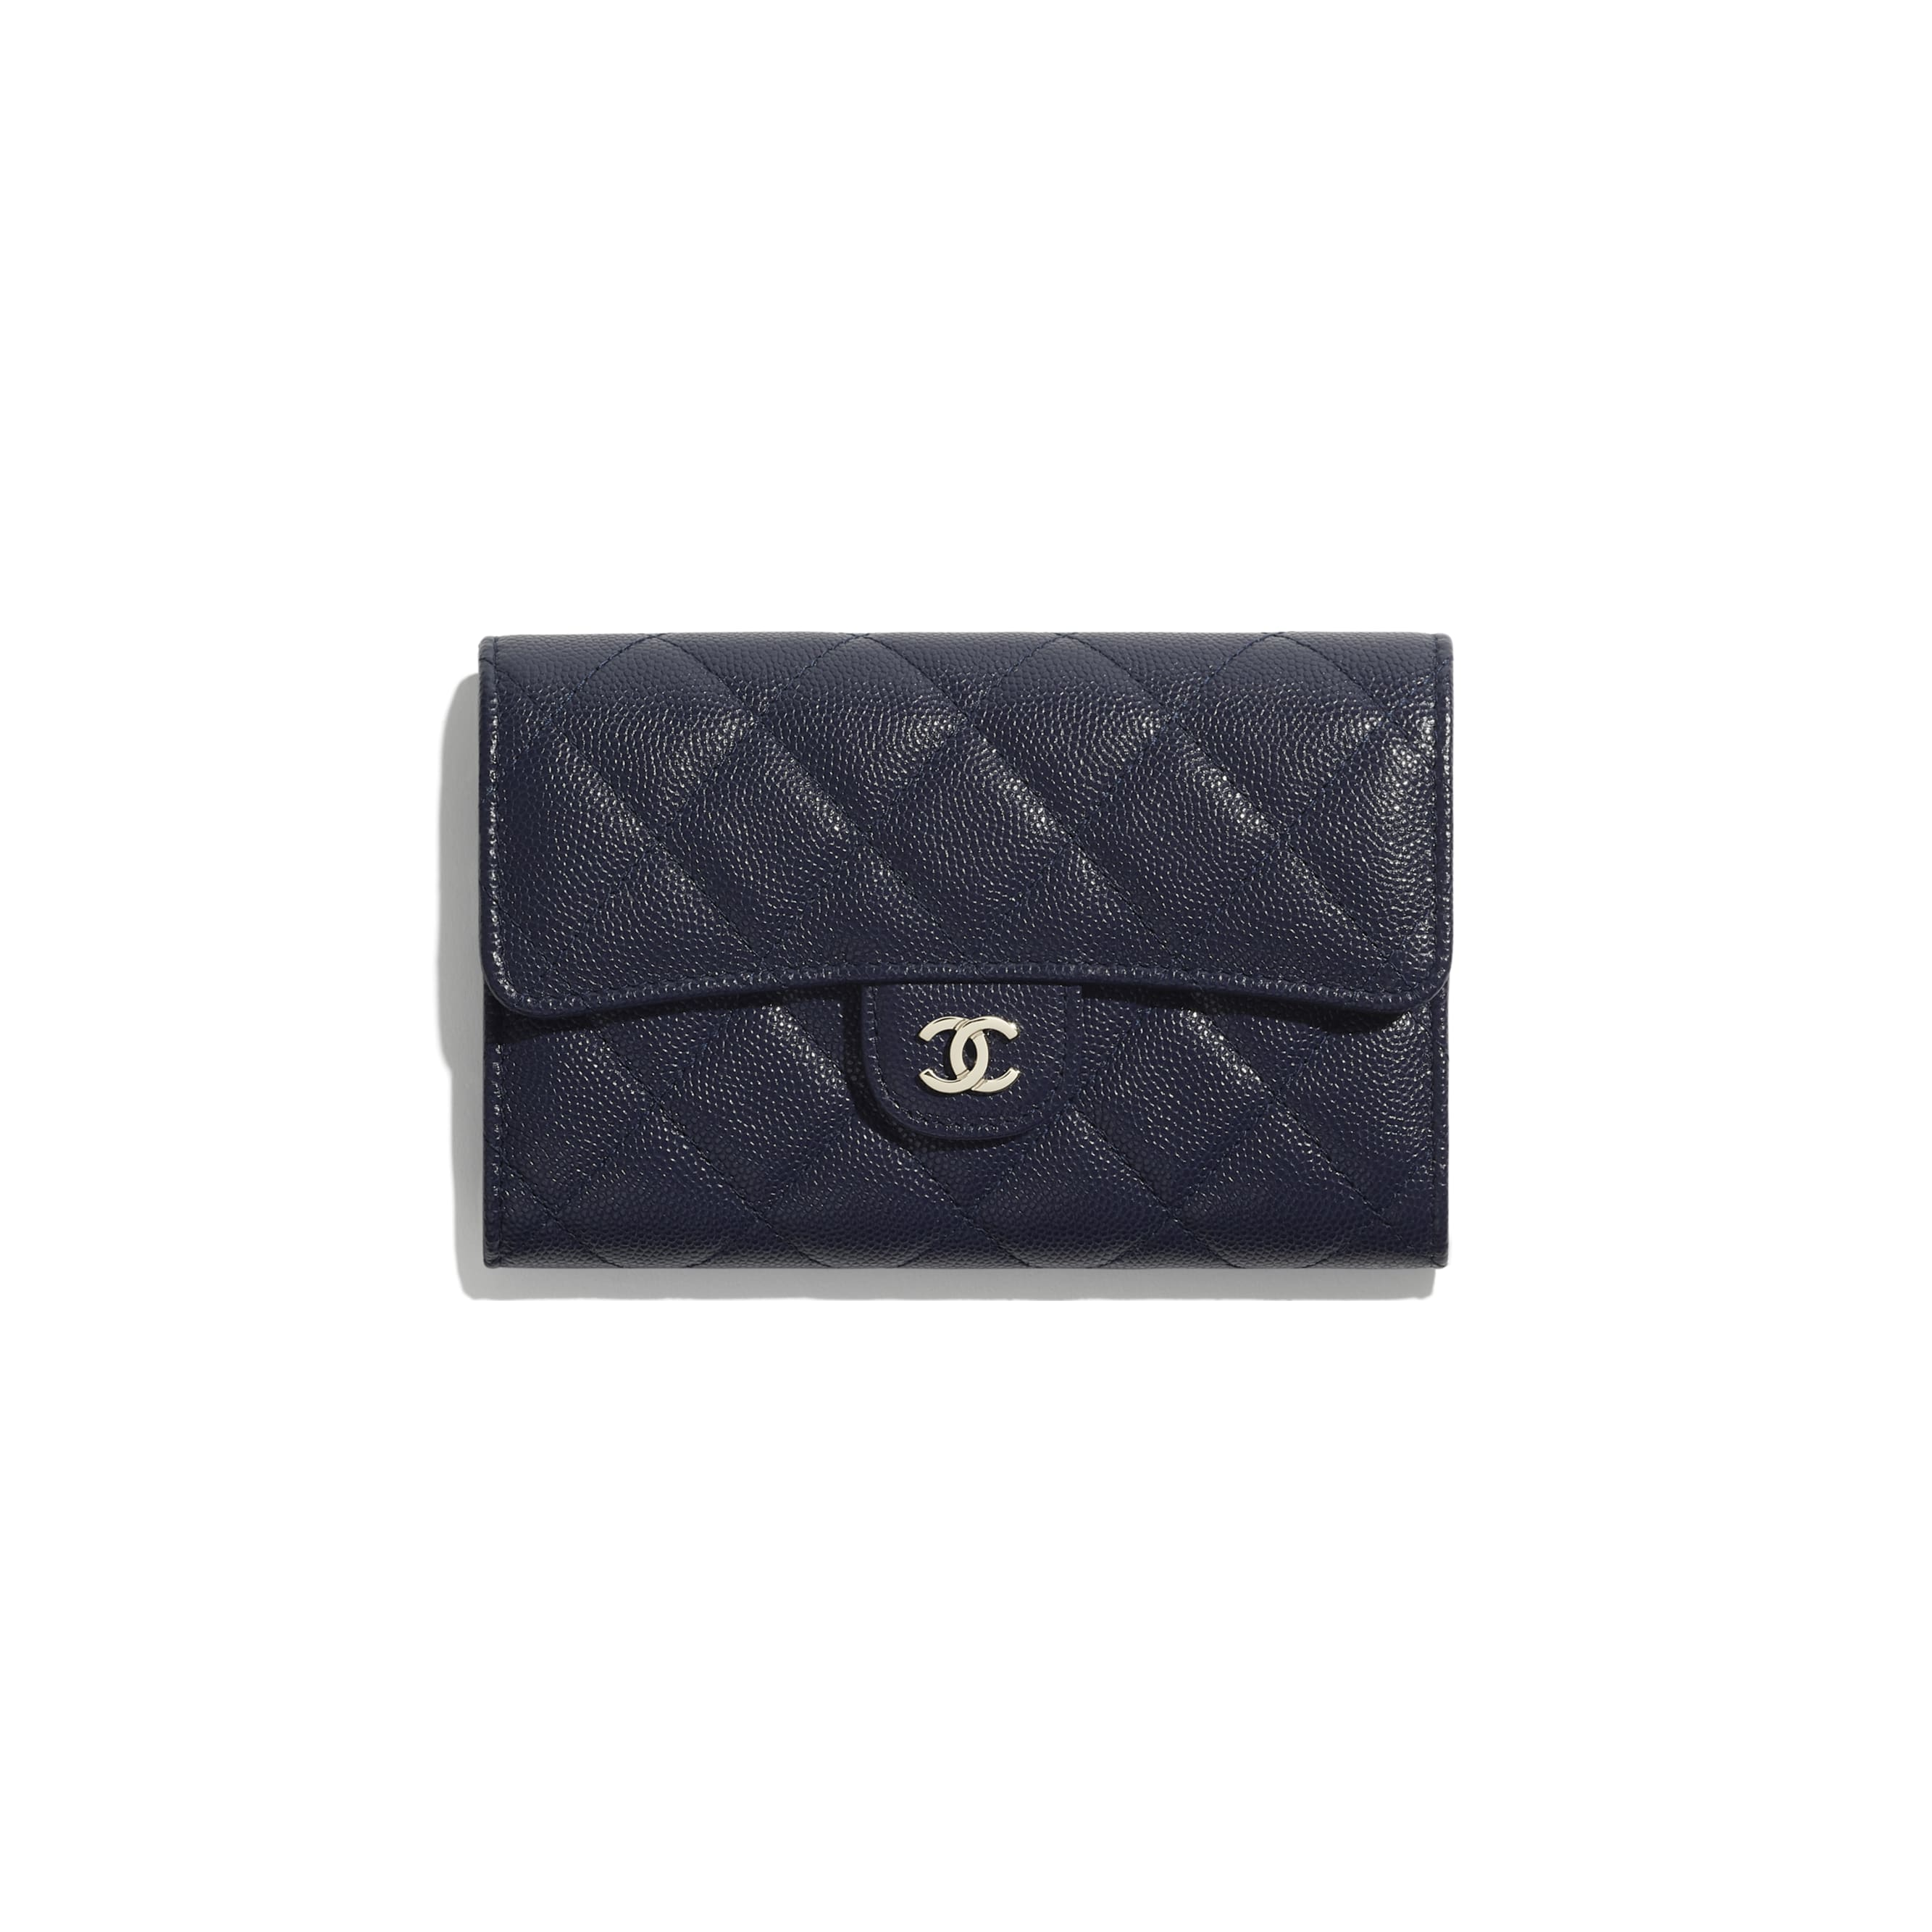 Classic Flap Wallet - Navy Blue - Grained Calfskin & Gold-Tone Metal - CHANEL - Default view - see standard sized version